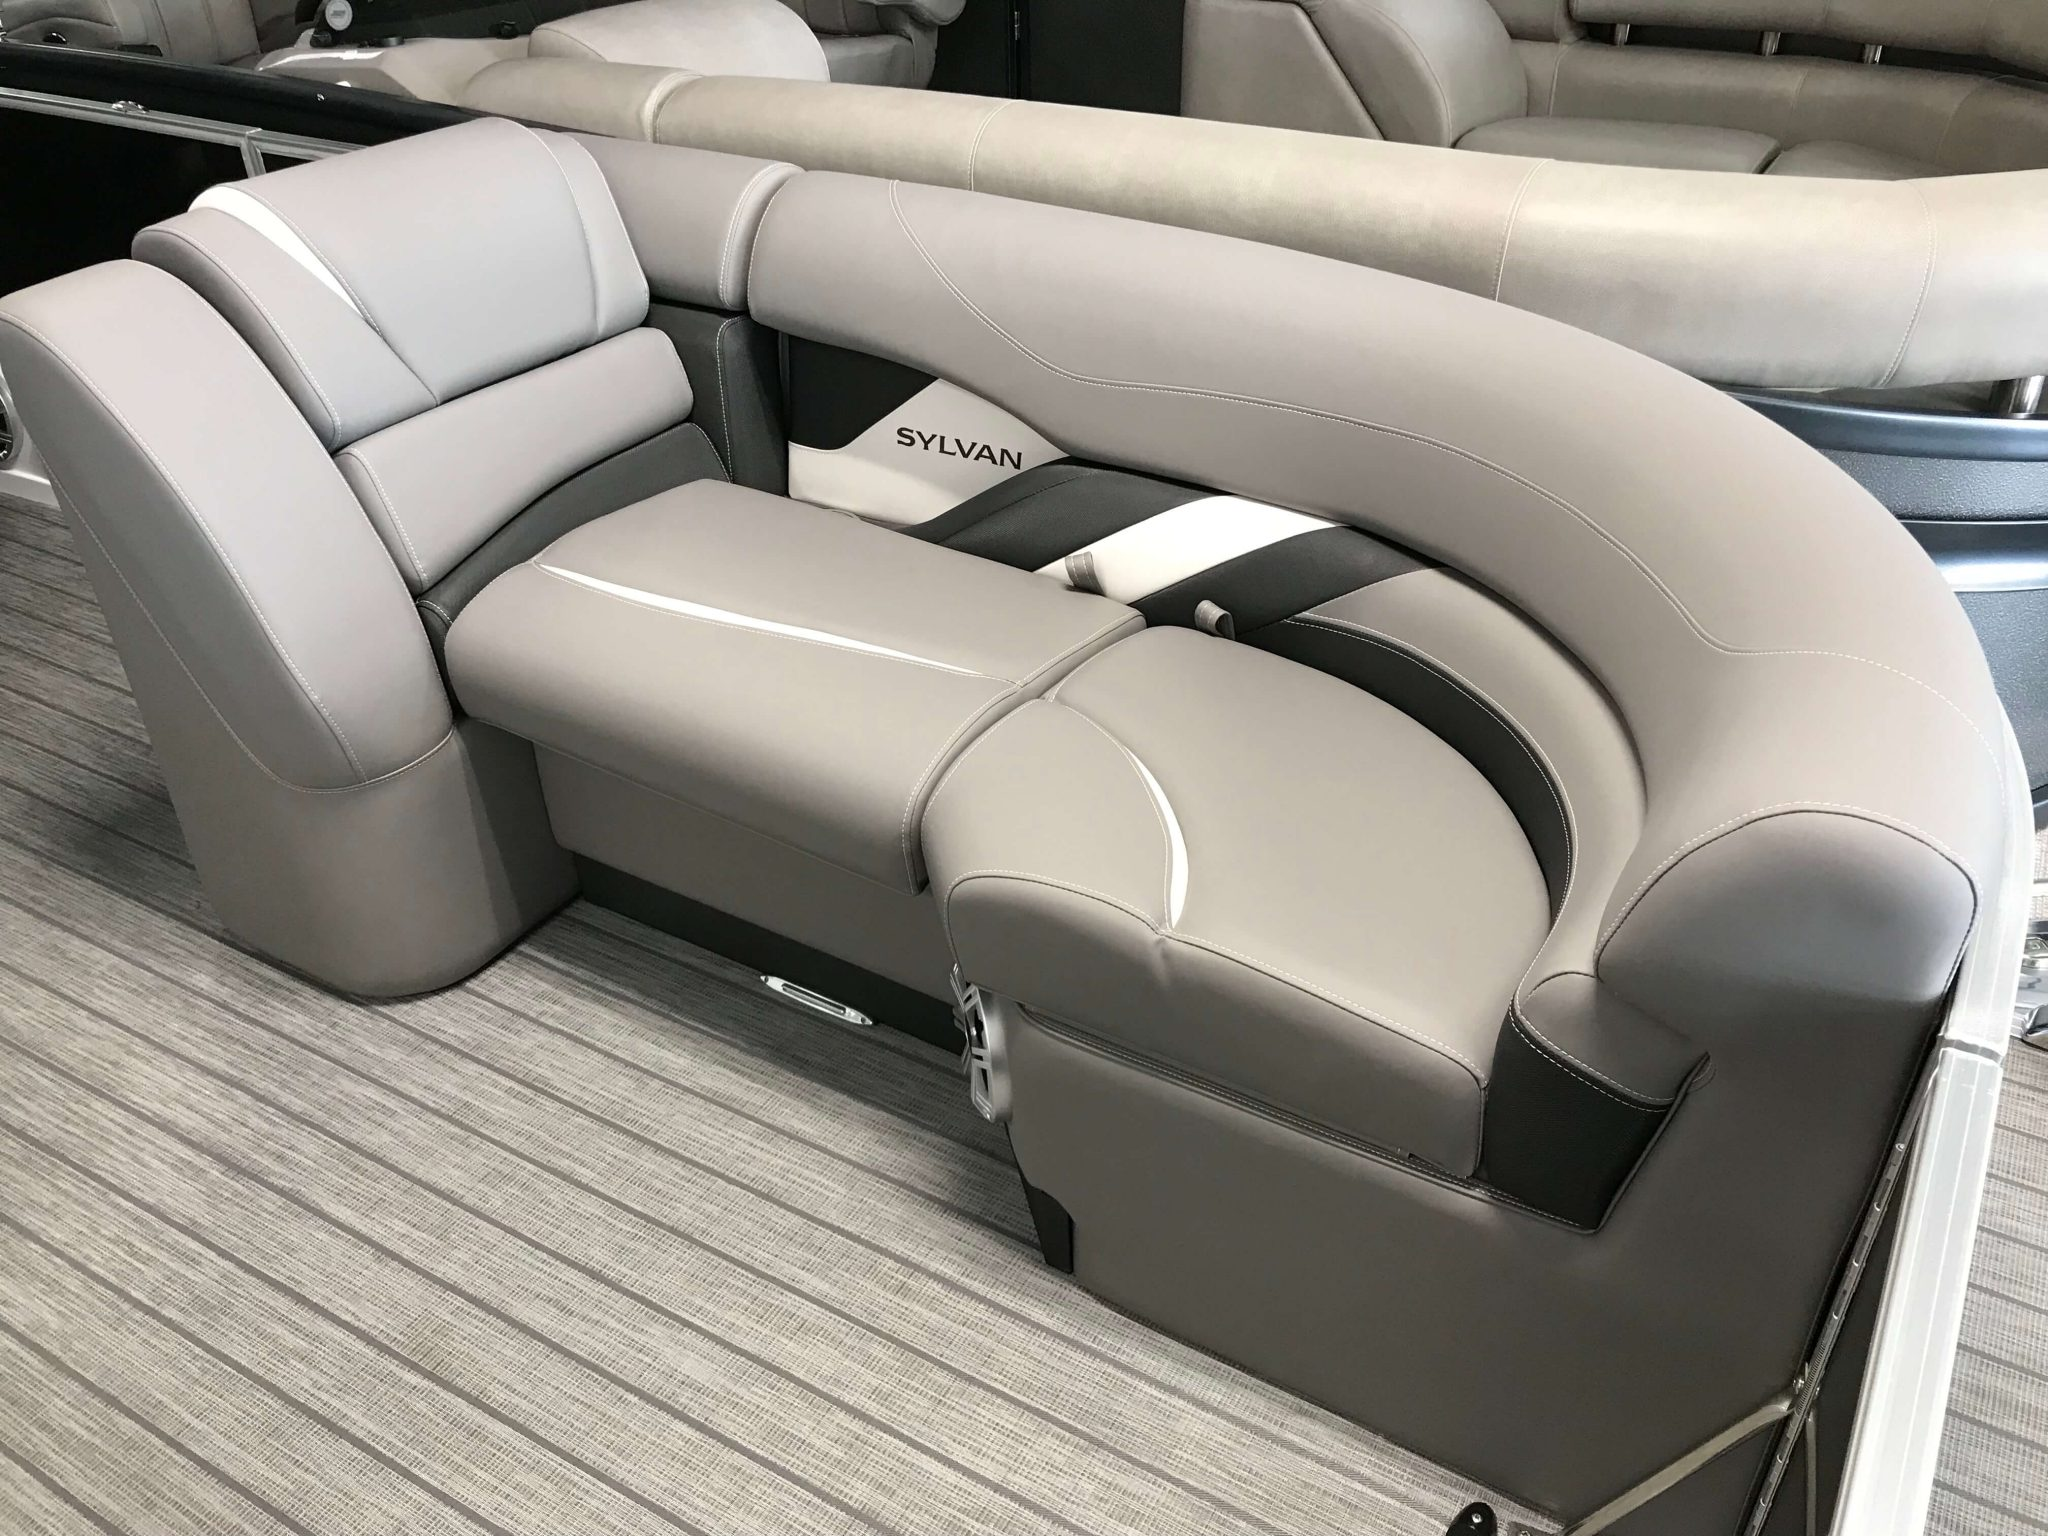 2019 Sylvan S3 LZ Tritoon Interior Seating 3